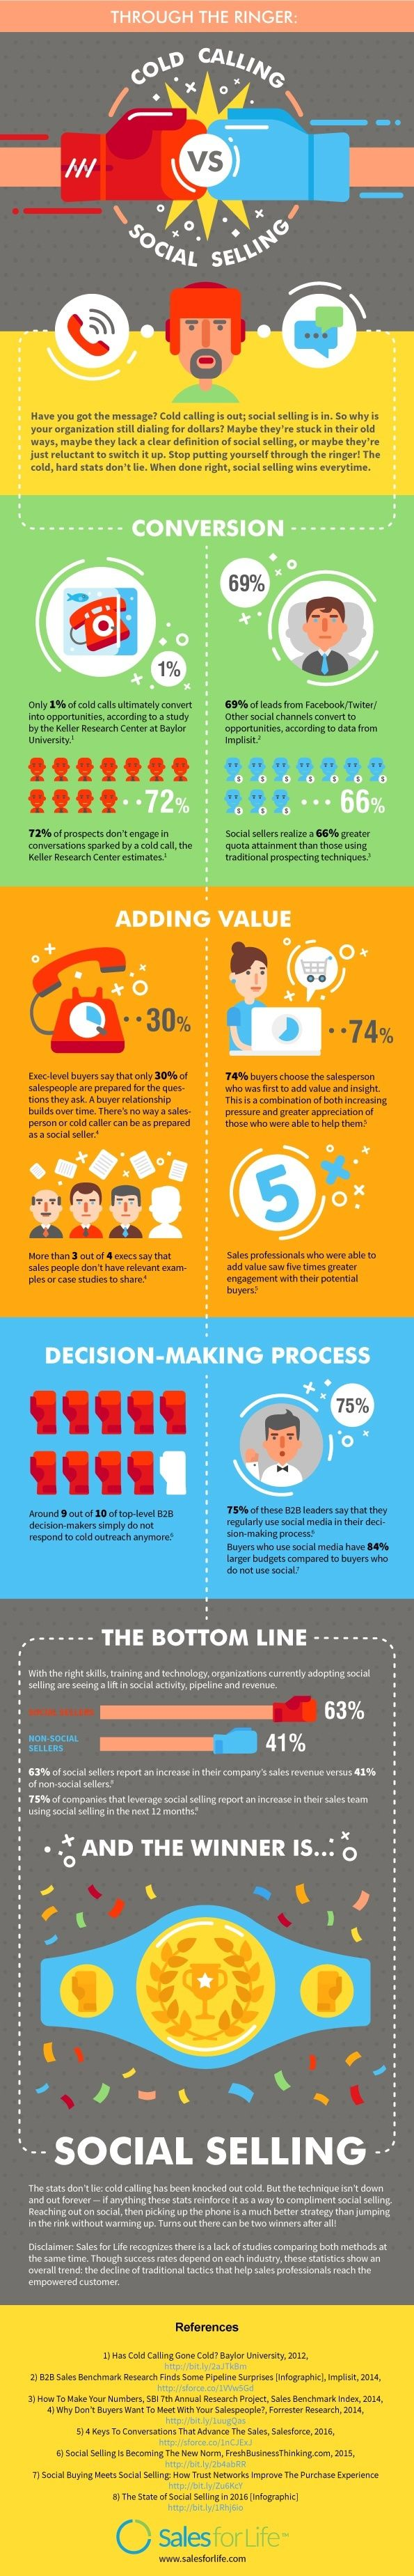 17 best ideas about s strategy s management it s all the heat in the marketplace right now social selling vs cold calling we ve created this infographic to help you choose the right s tactic